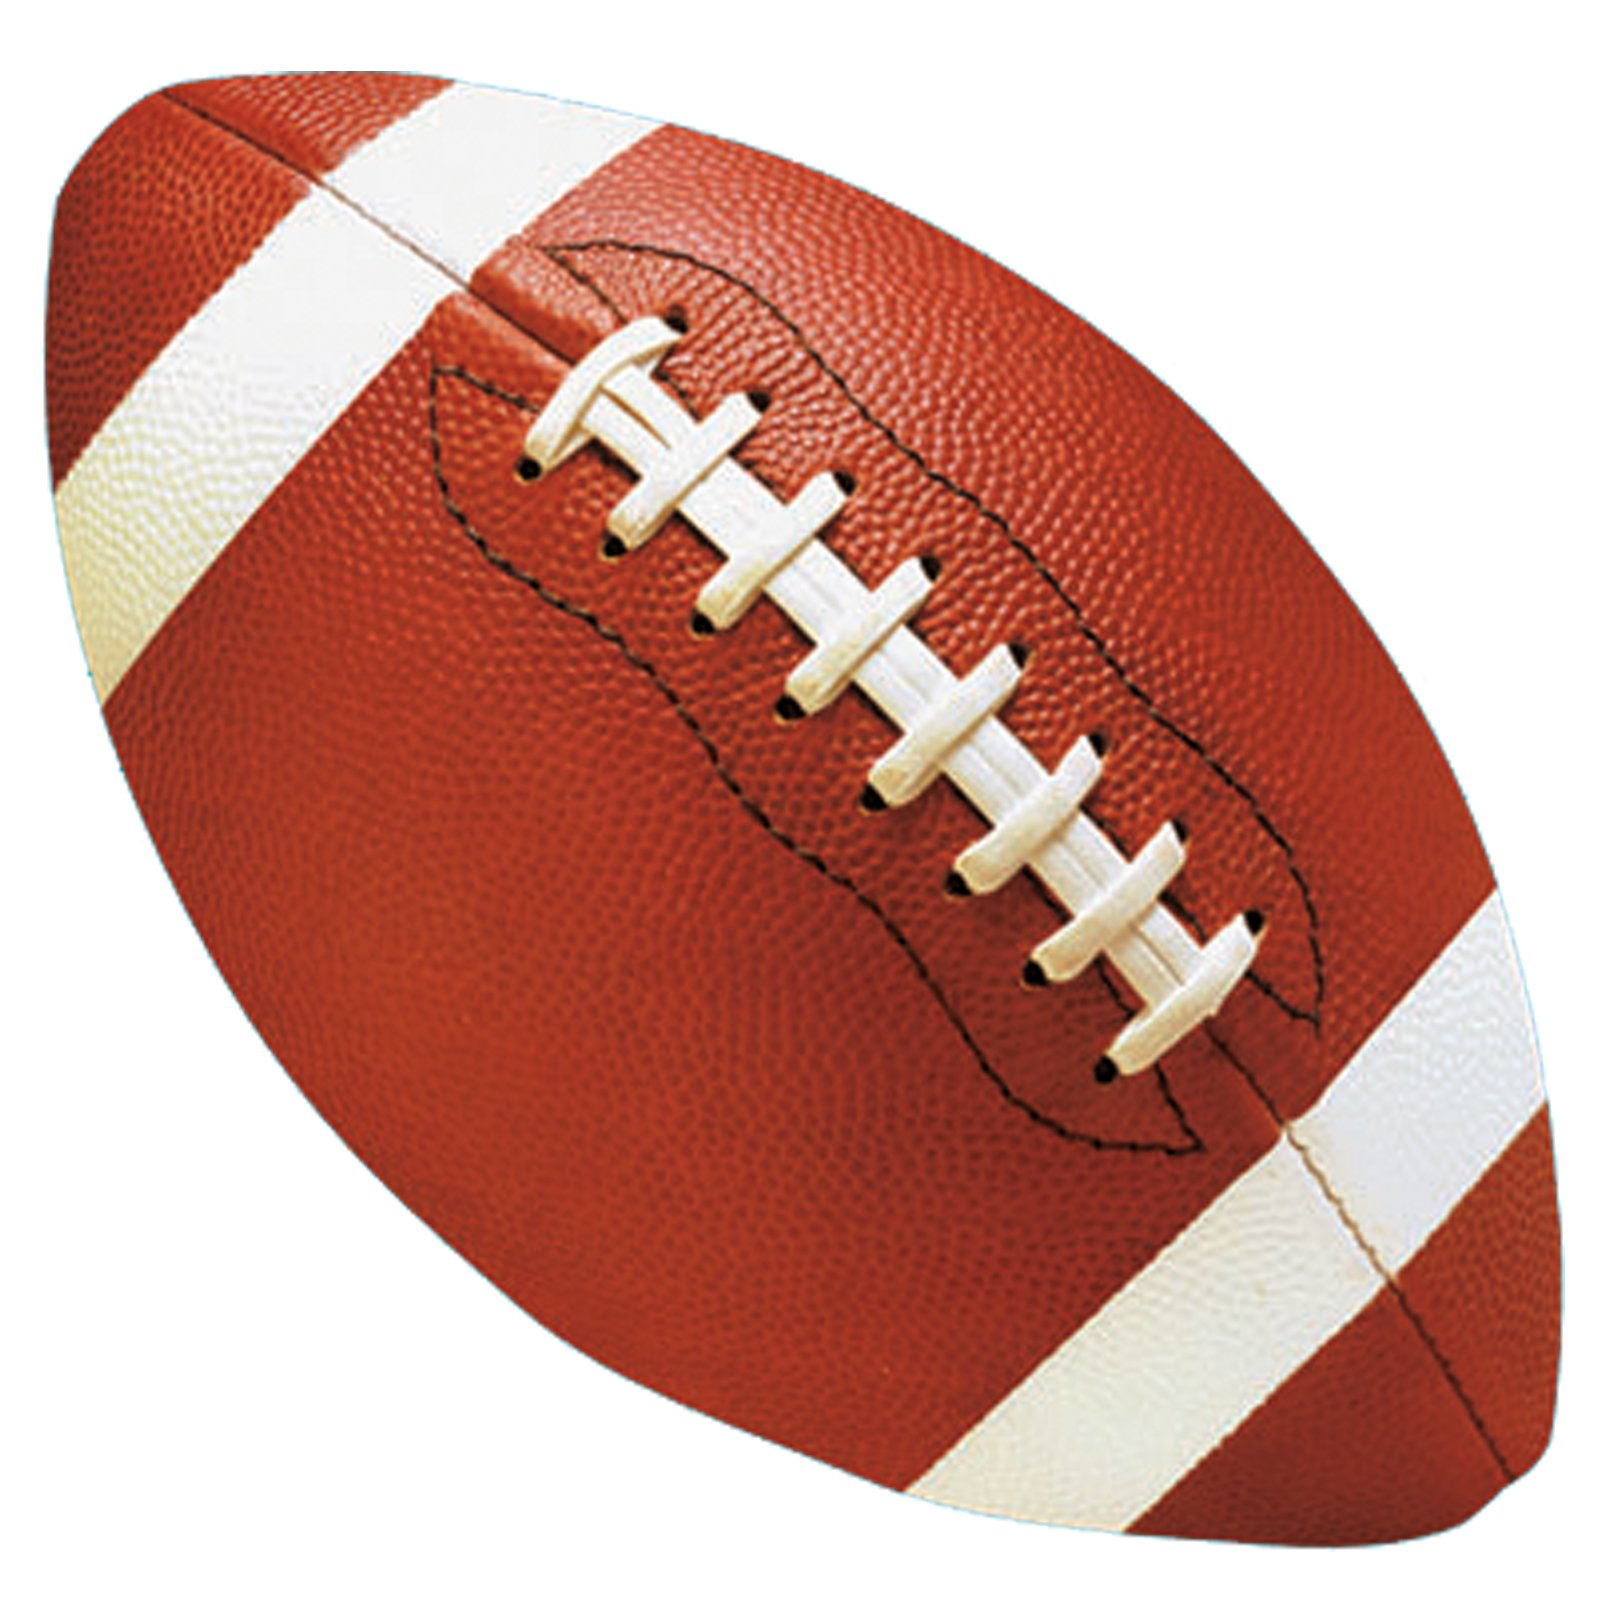 American Football Ball 233.68 Kb